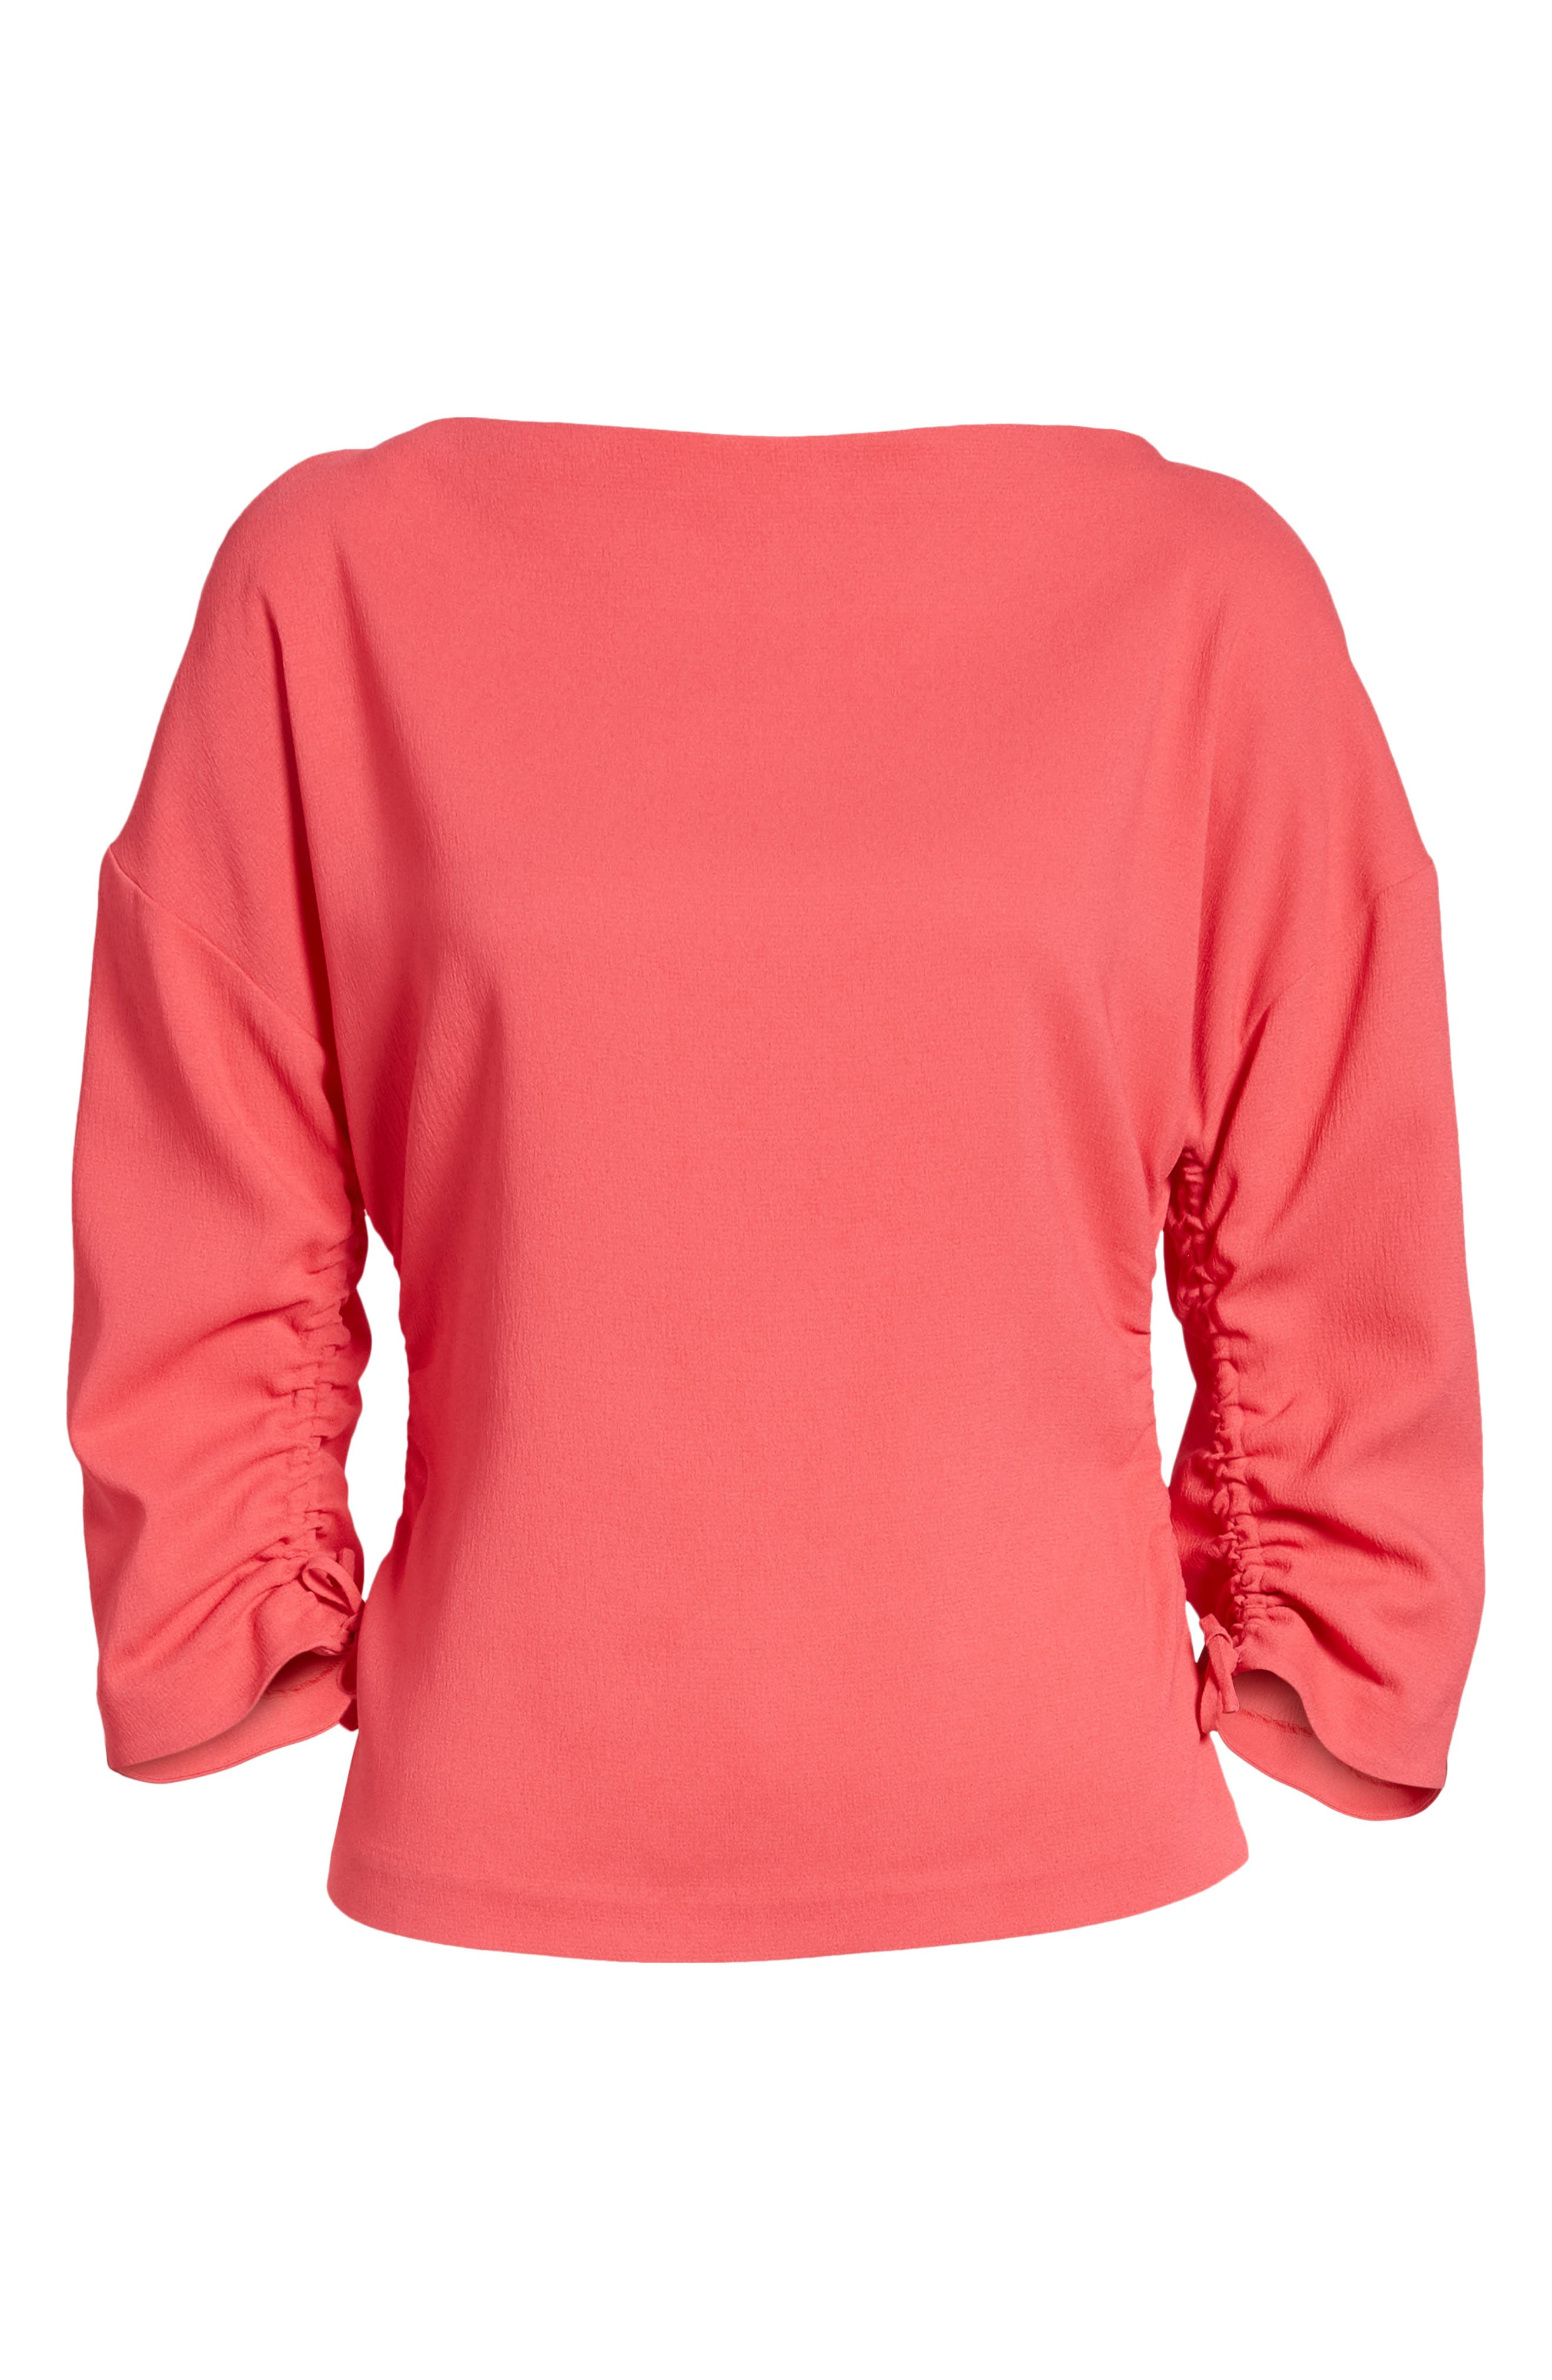 Ruched Crepe Top,                             Alternate thumbnail 7, color,                             Pink Honey